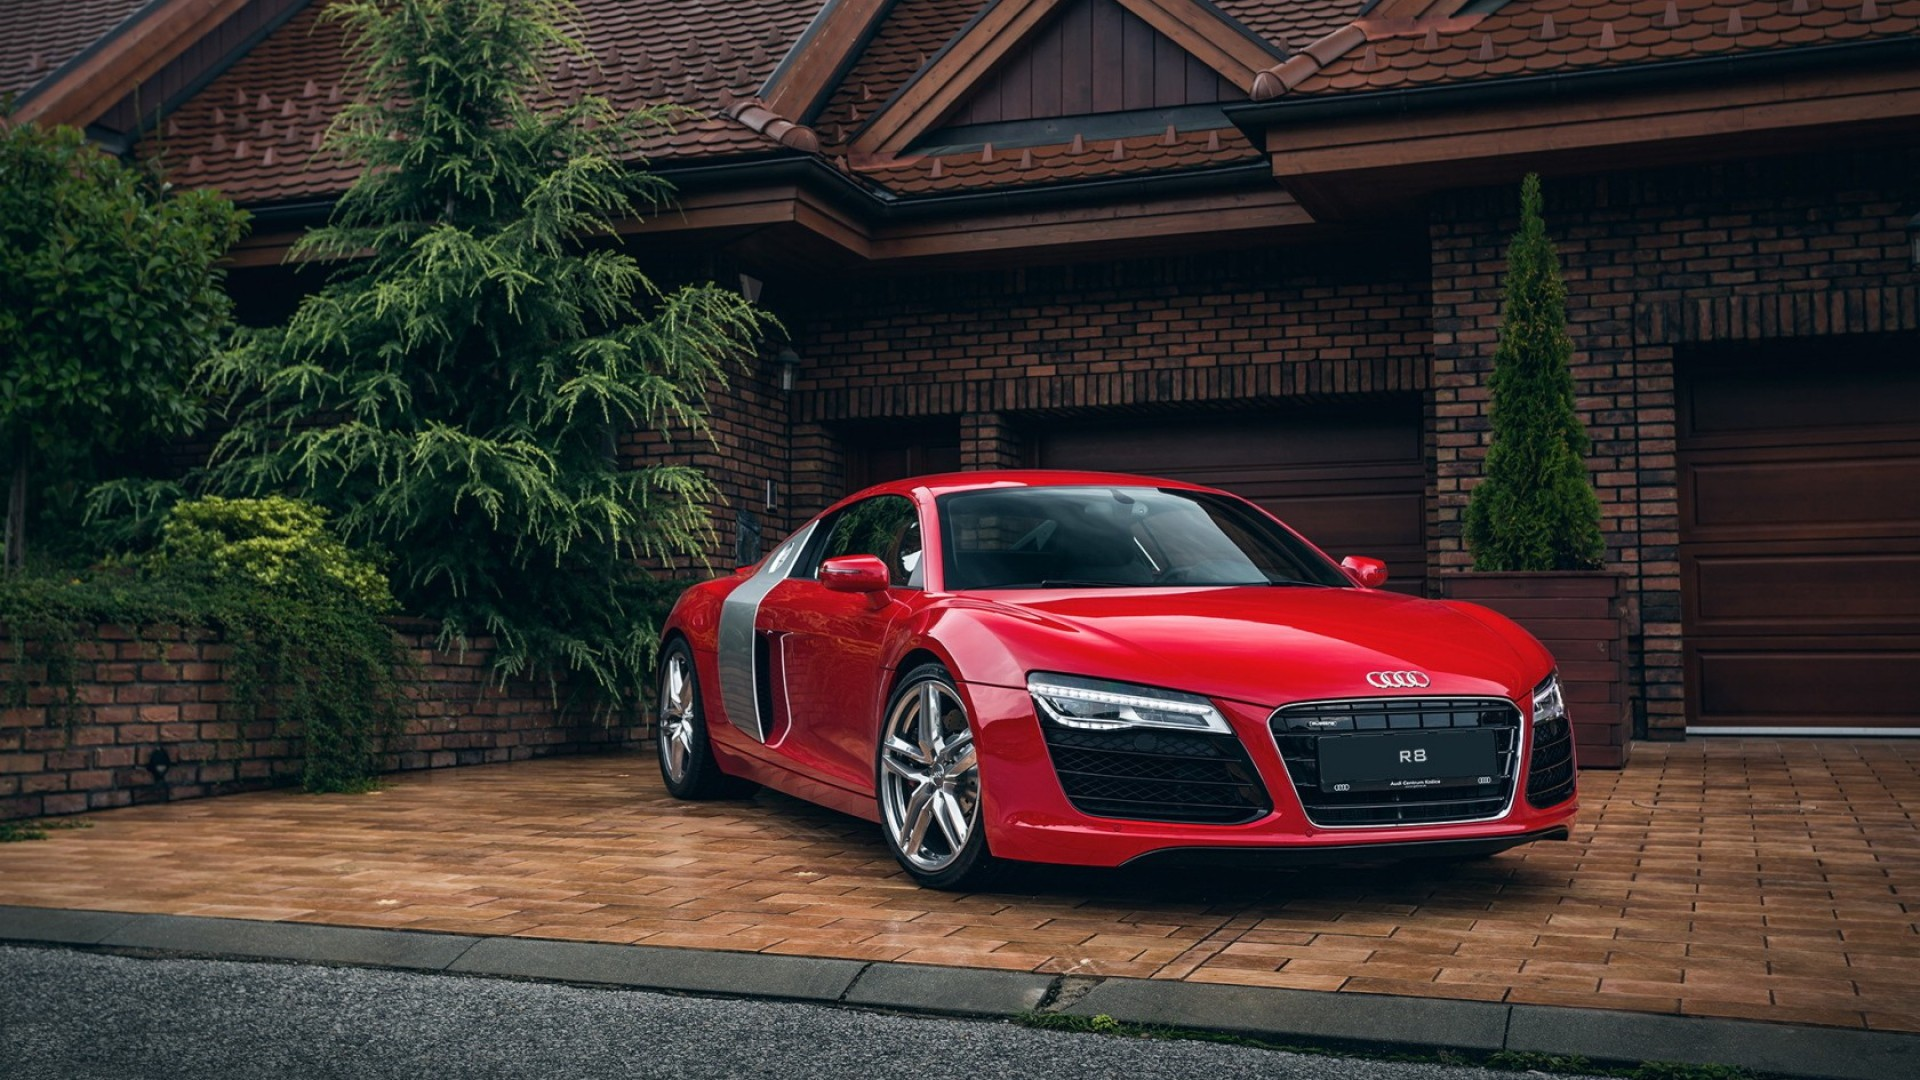 Wallpaper audi, r8, red, front view